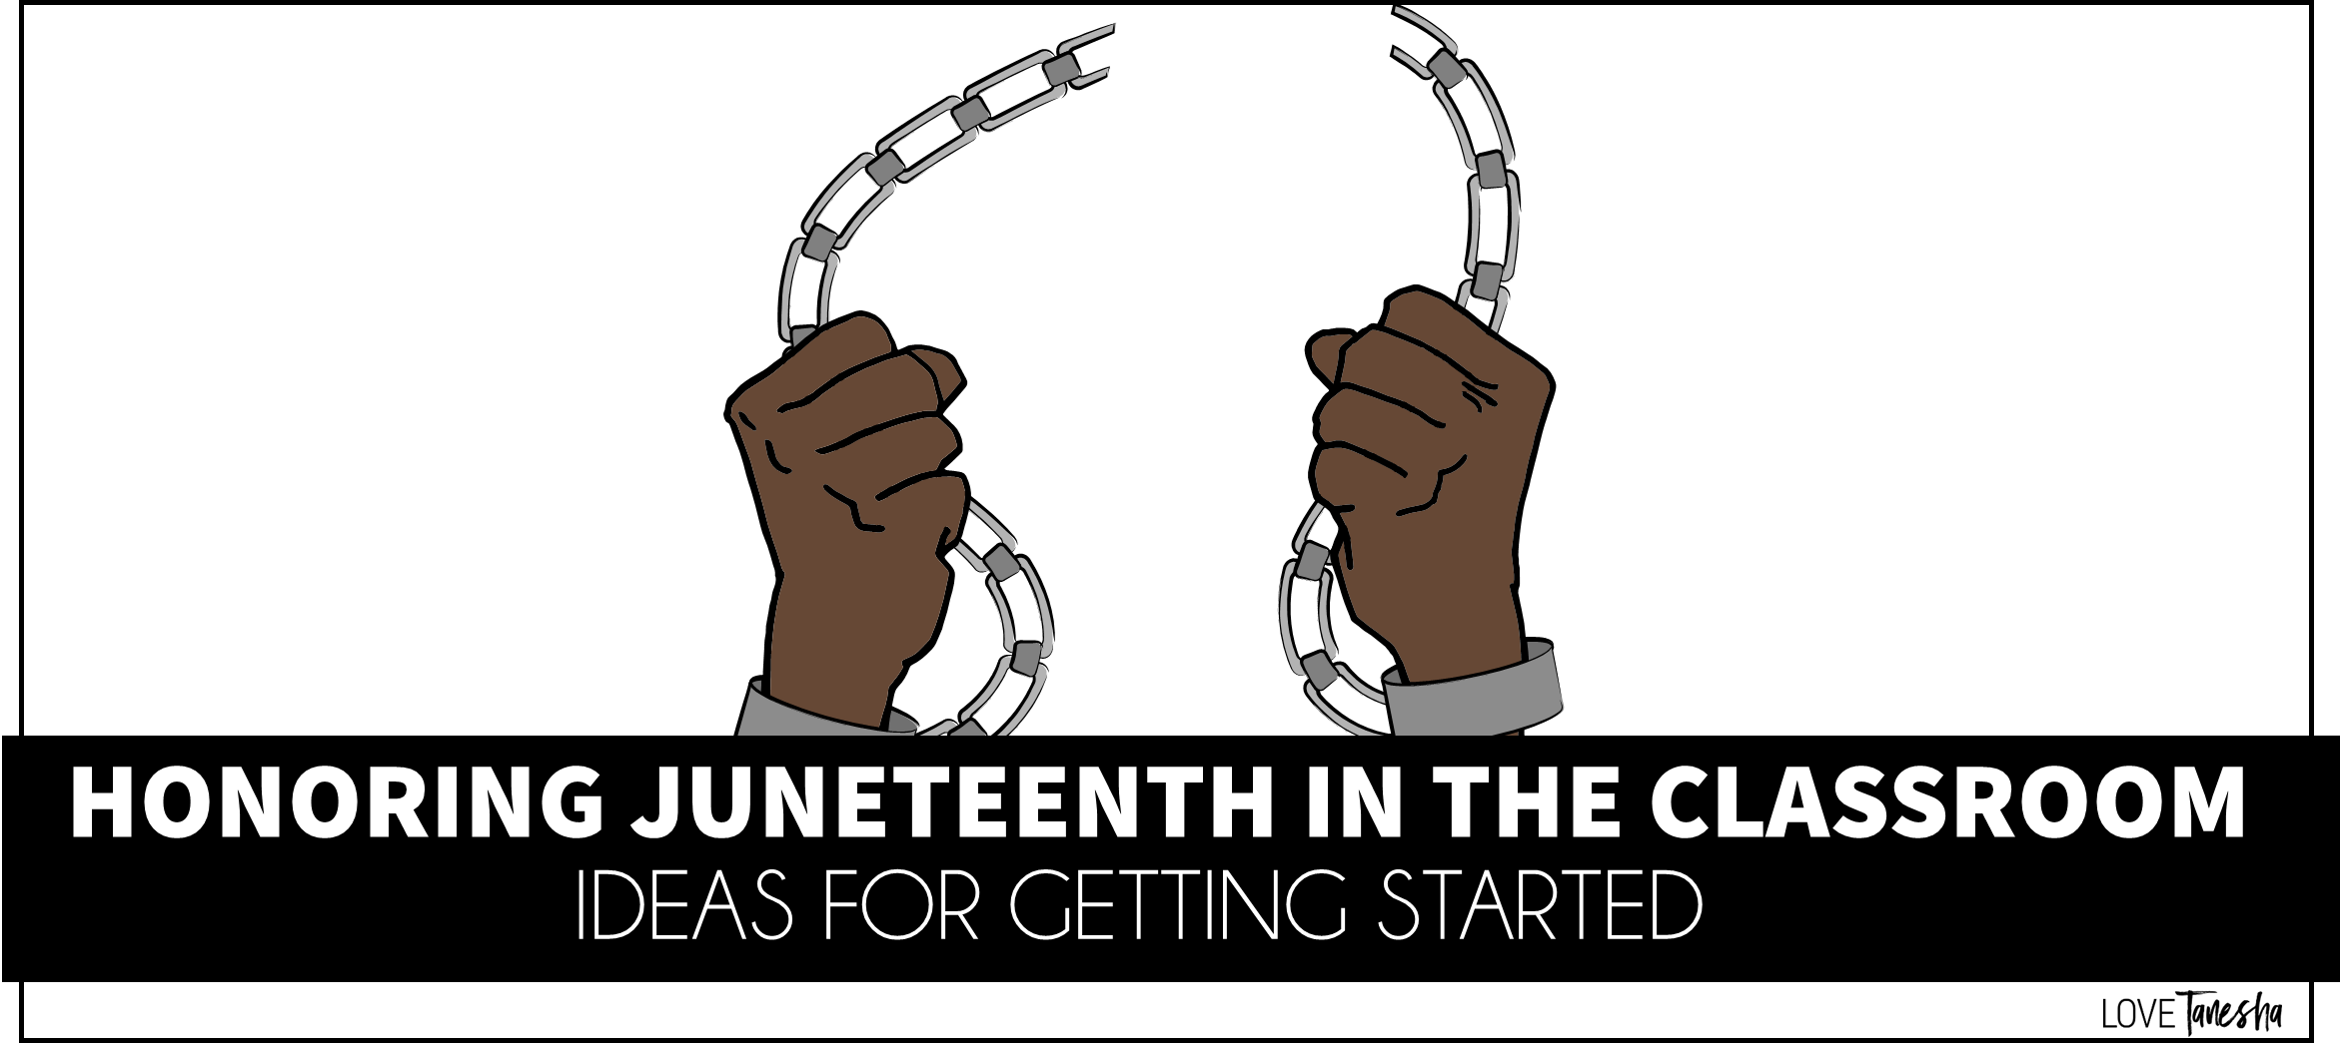 Honoring Juneteenth in the Classroom